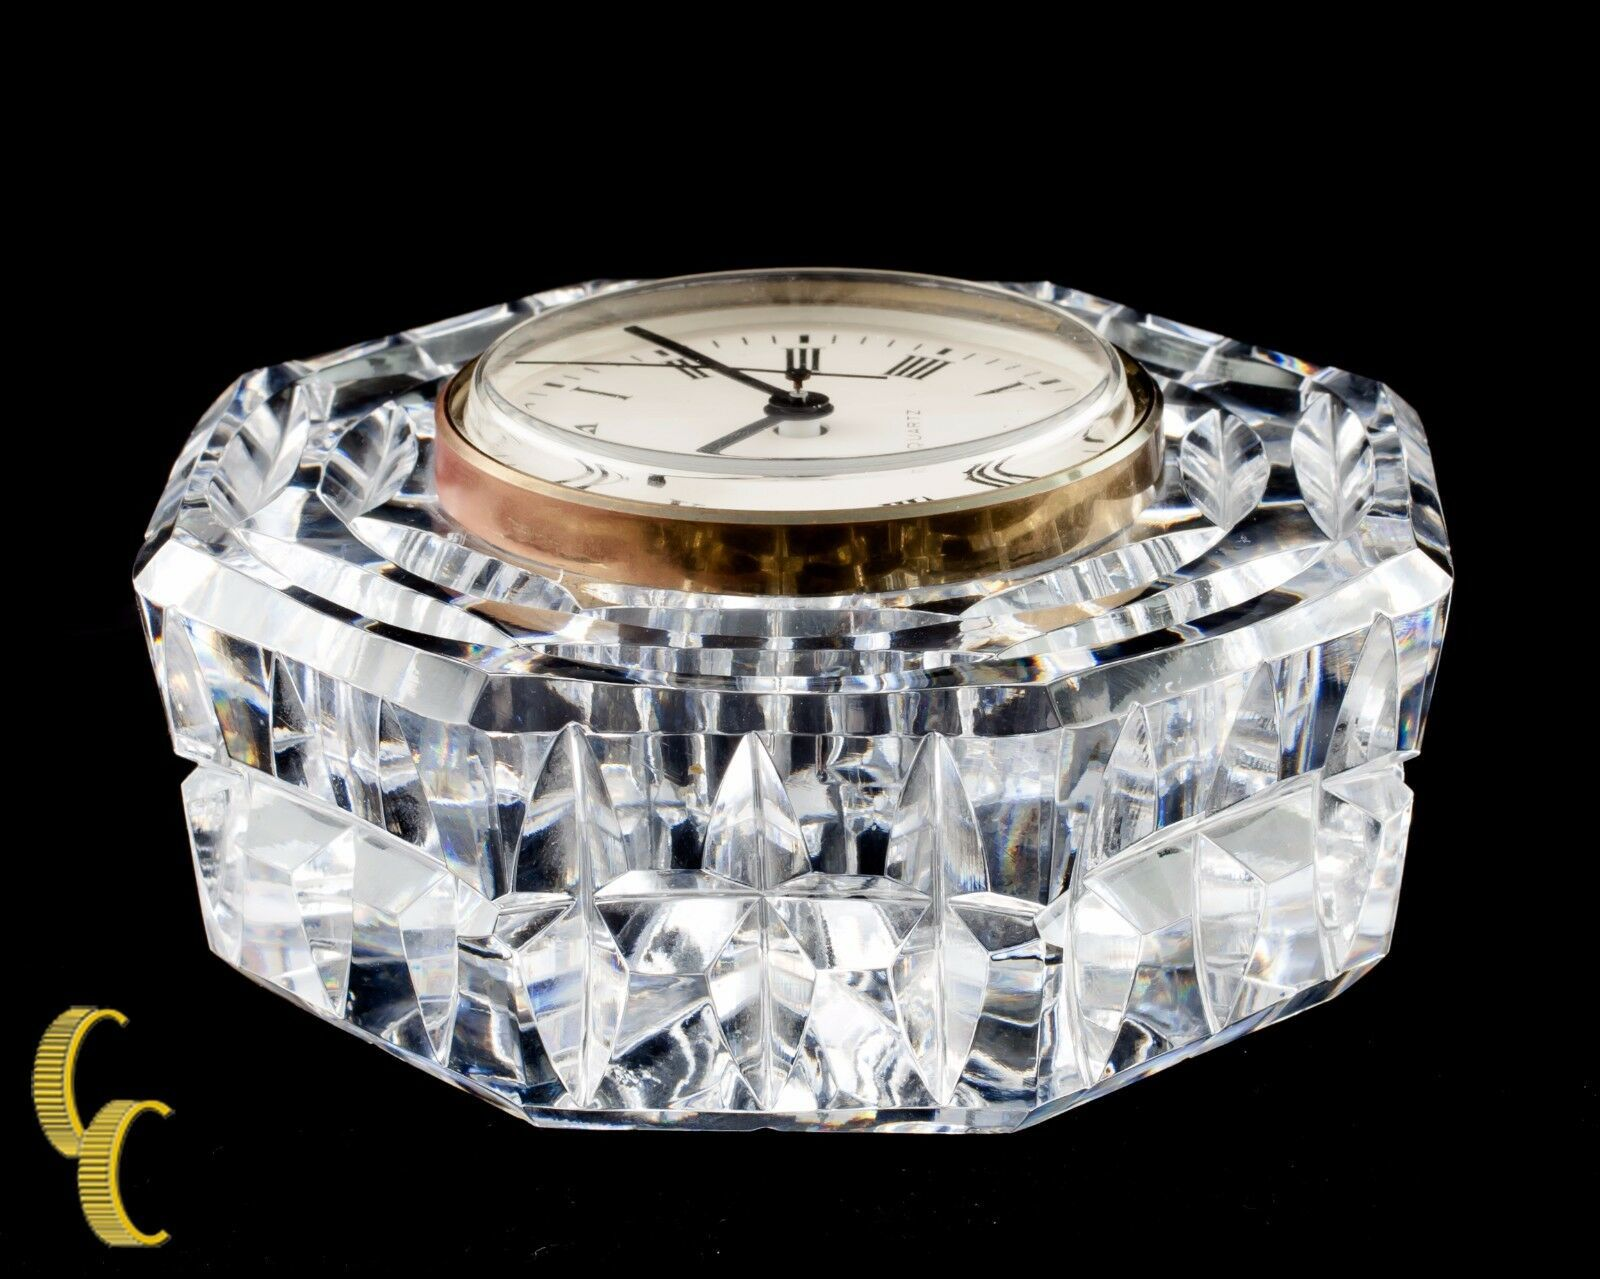 Primary image for Waterford Crystal Octogon Quartz Mantle Clock Nice